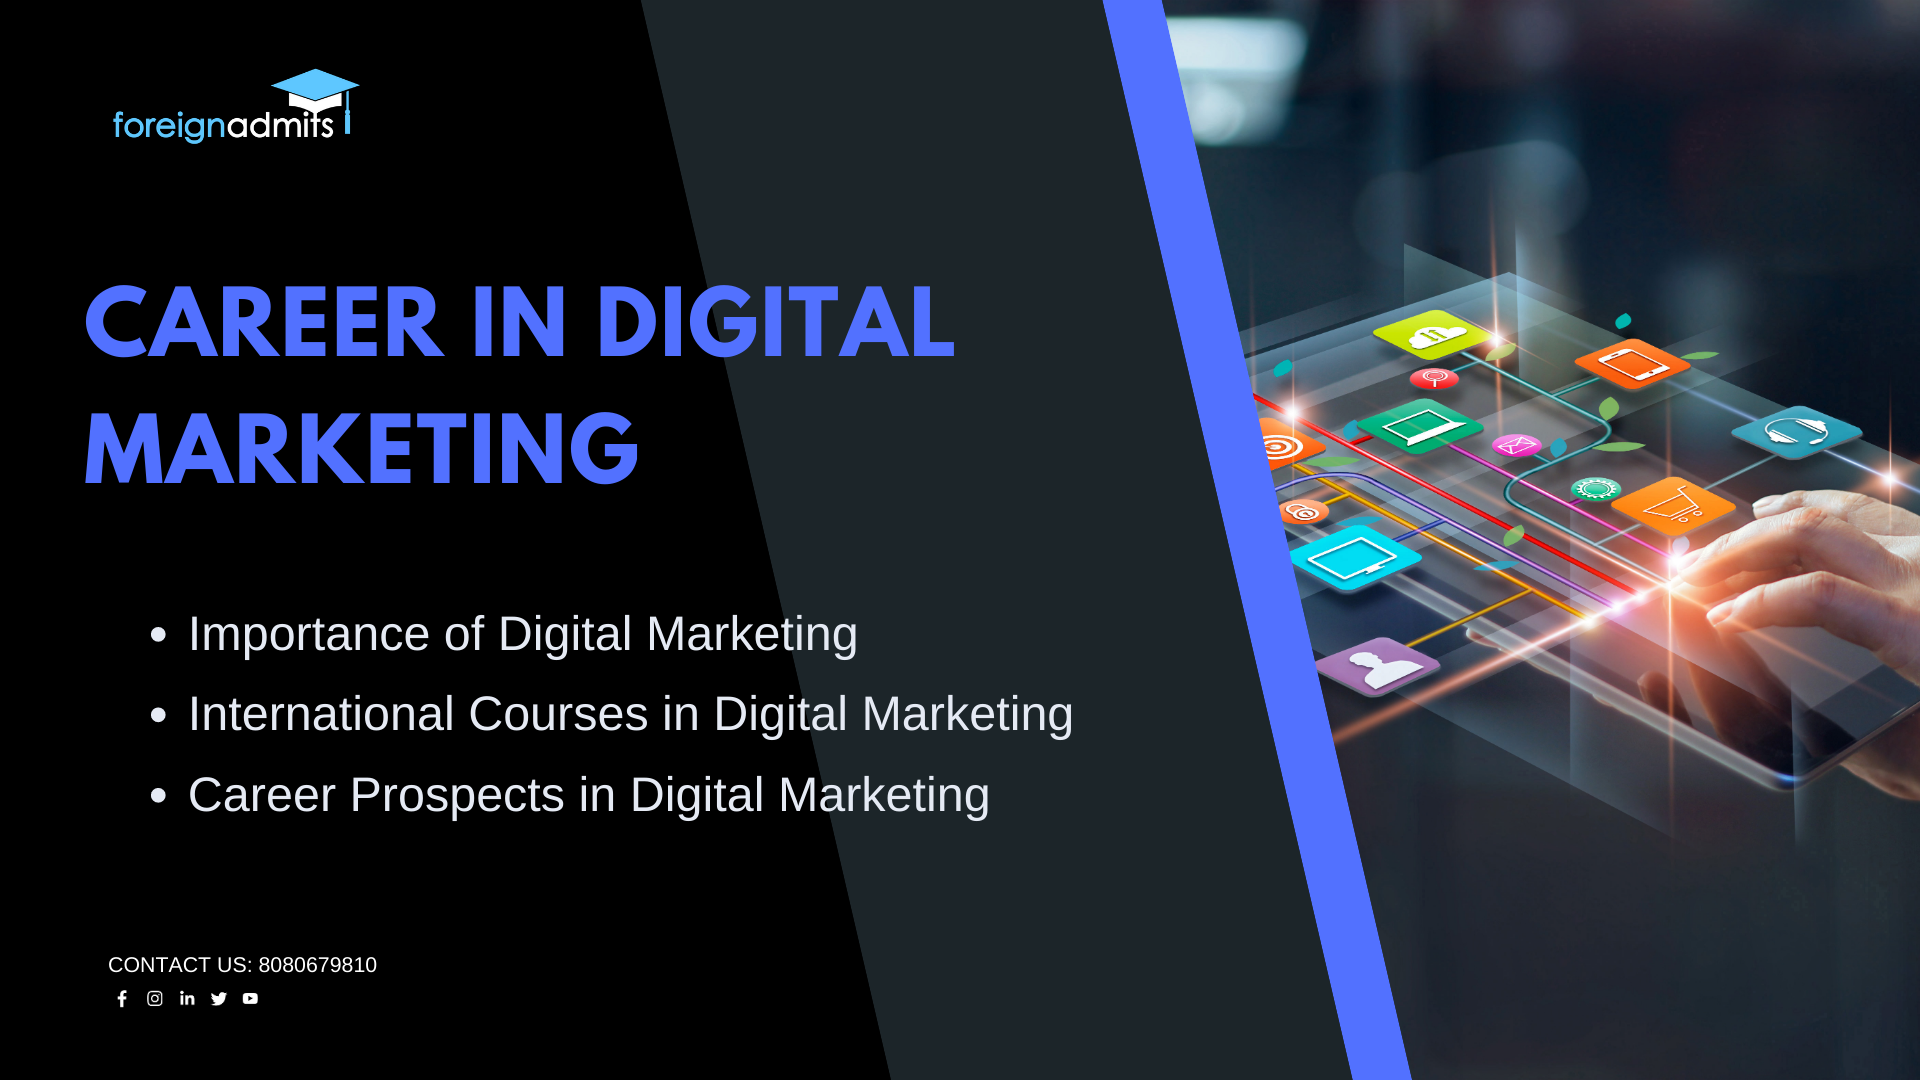 careers in digital marketing